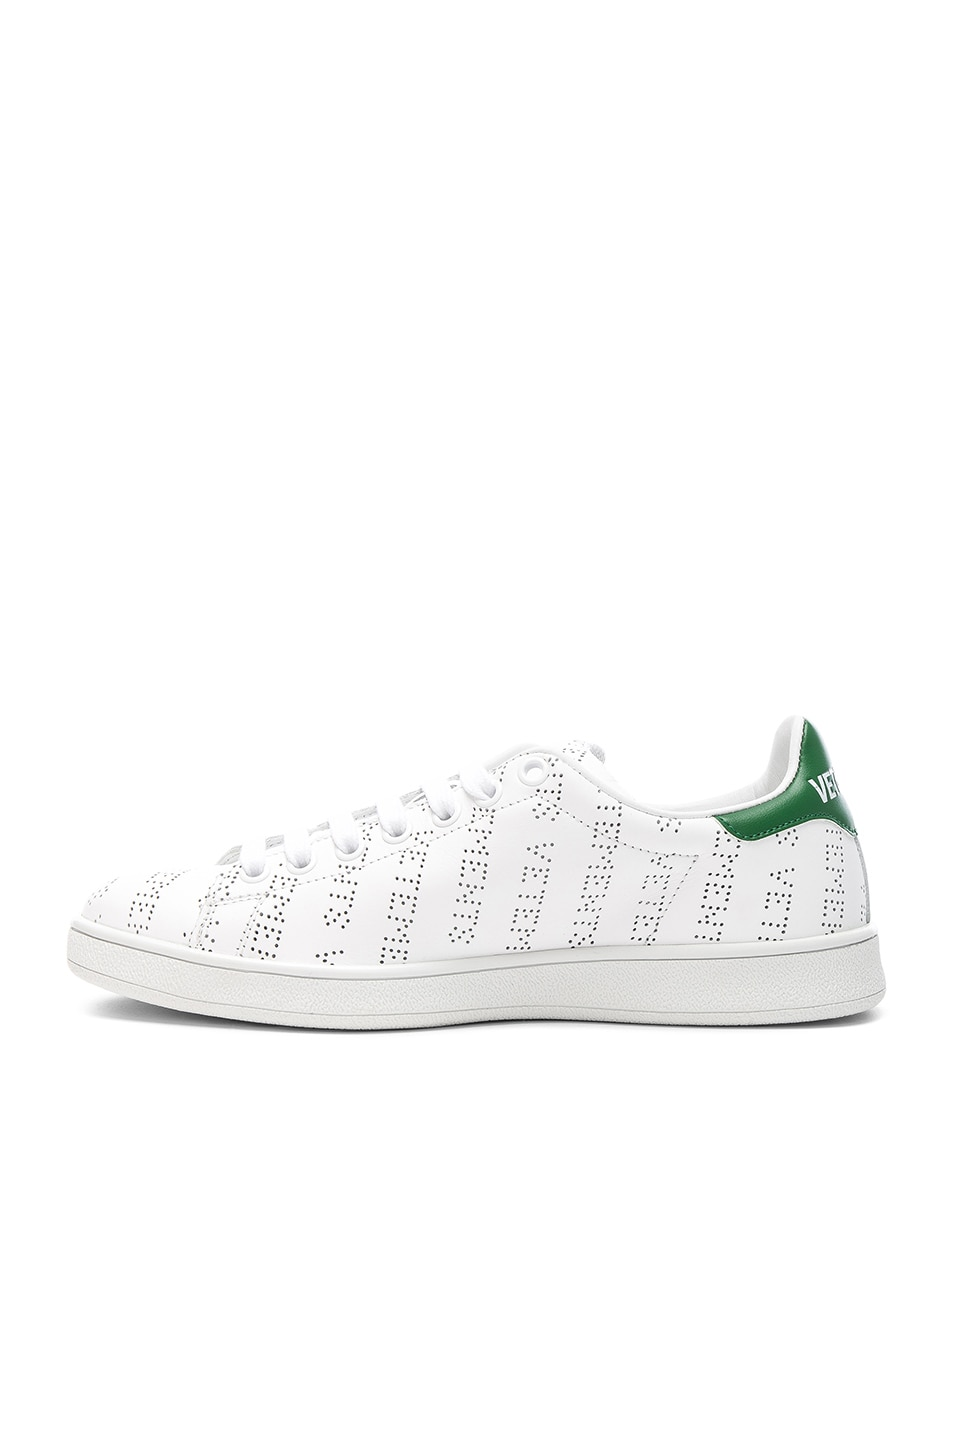 Image 5 of VETEMENTS Perforated Sneakers in White & Green